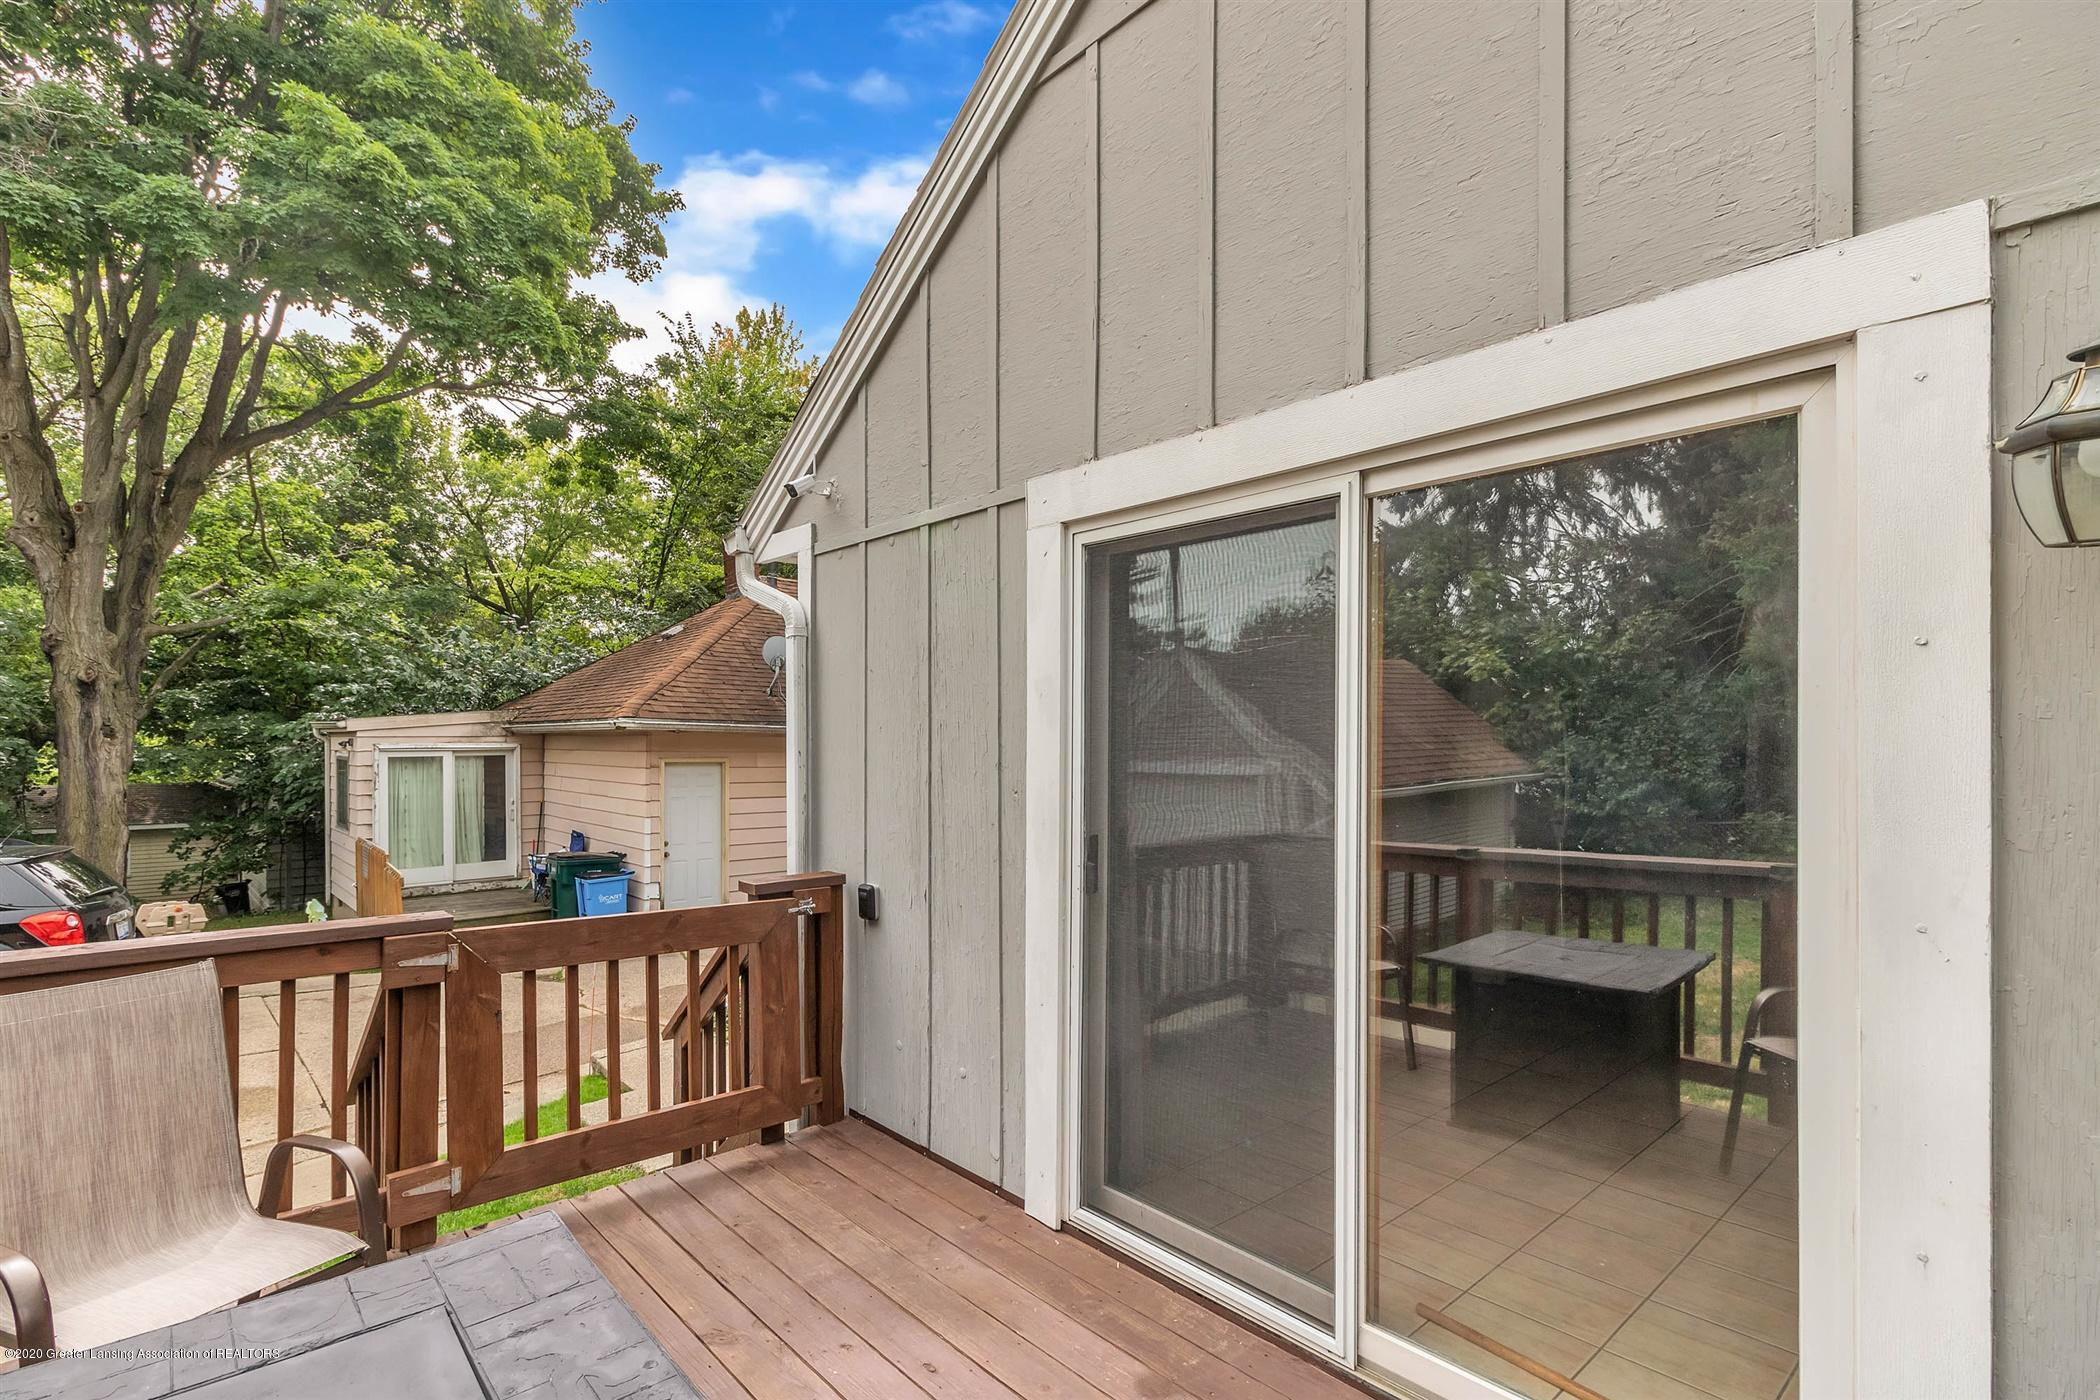 2127 Forest Ave - 35-2127 Forest Ave-WindowStill-Real - 34